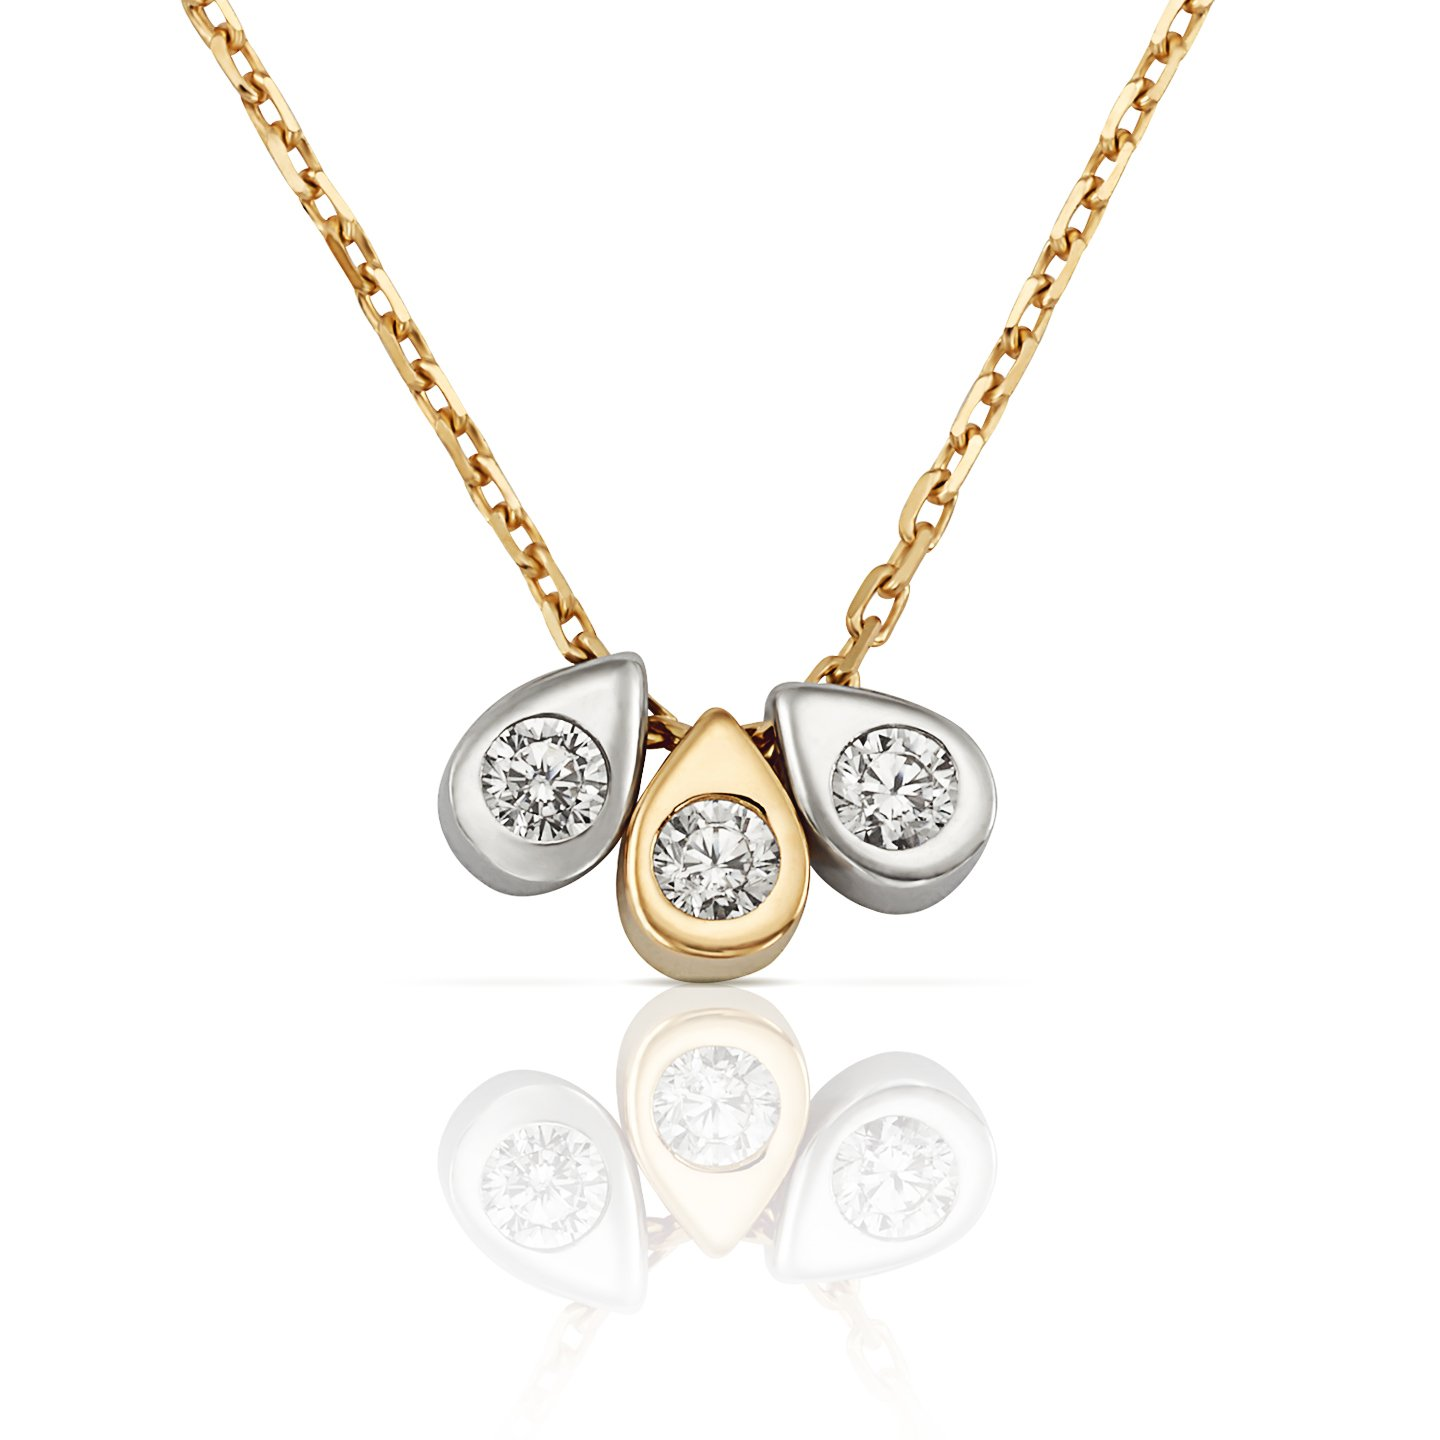 Jewel Connection 3-Stone Teardrop Charm Slide Necklace in Two Tone 14k Yellow and White Gold